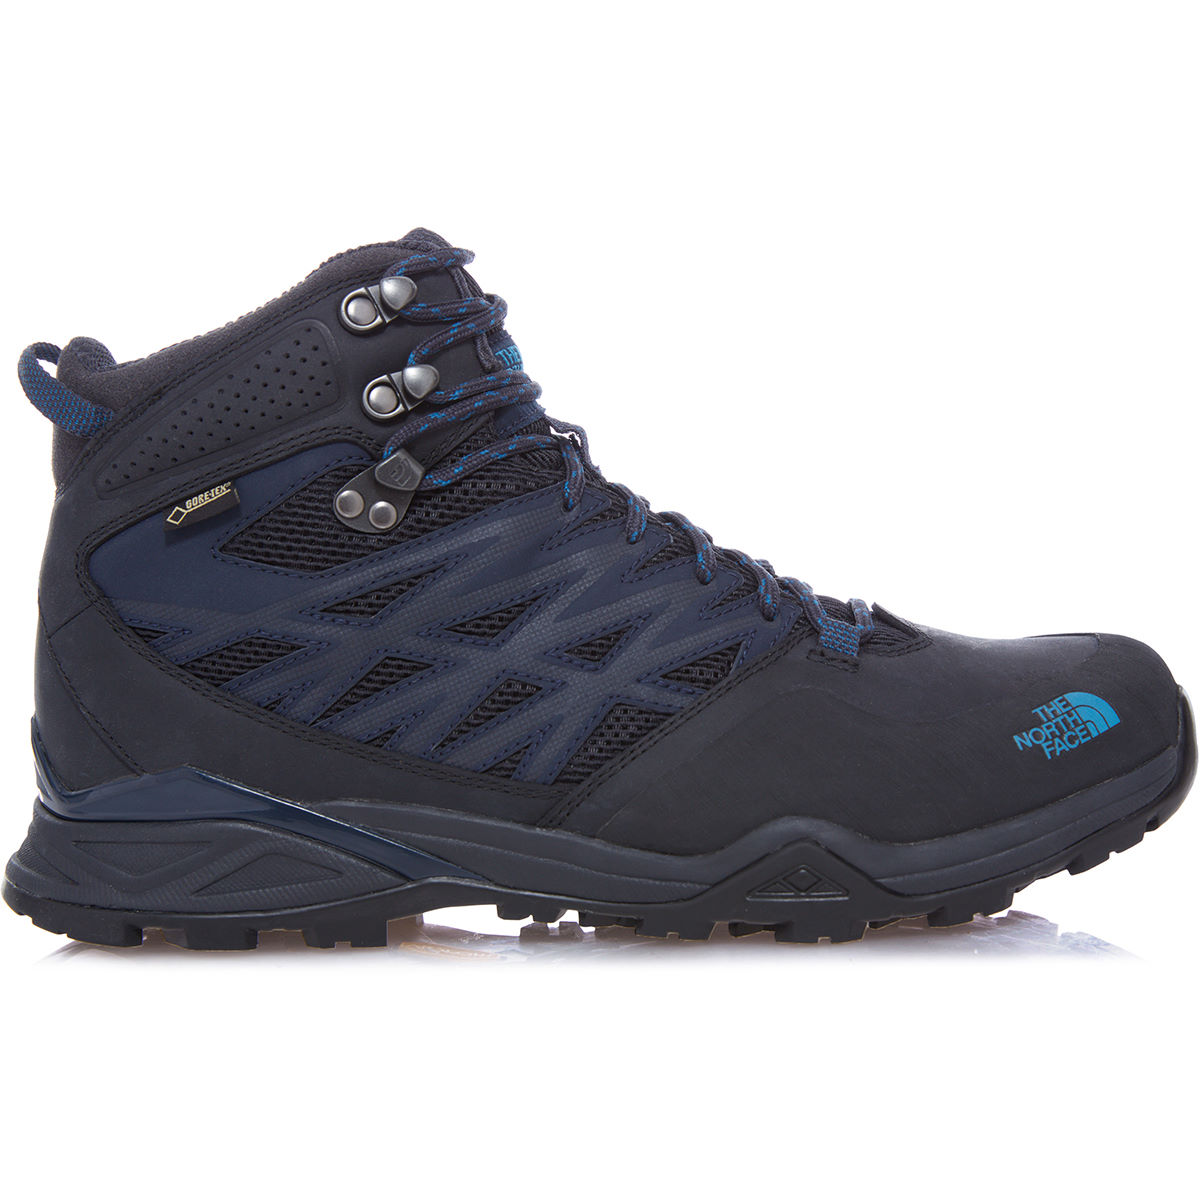 Chaussures The North Face Hedgehog Hike Mid Gore-Tex - 9.5